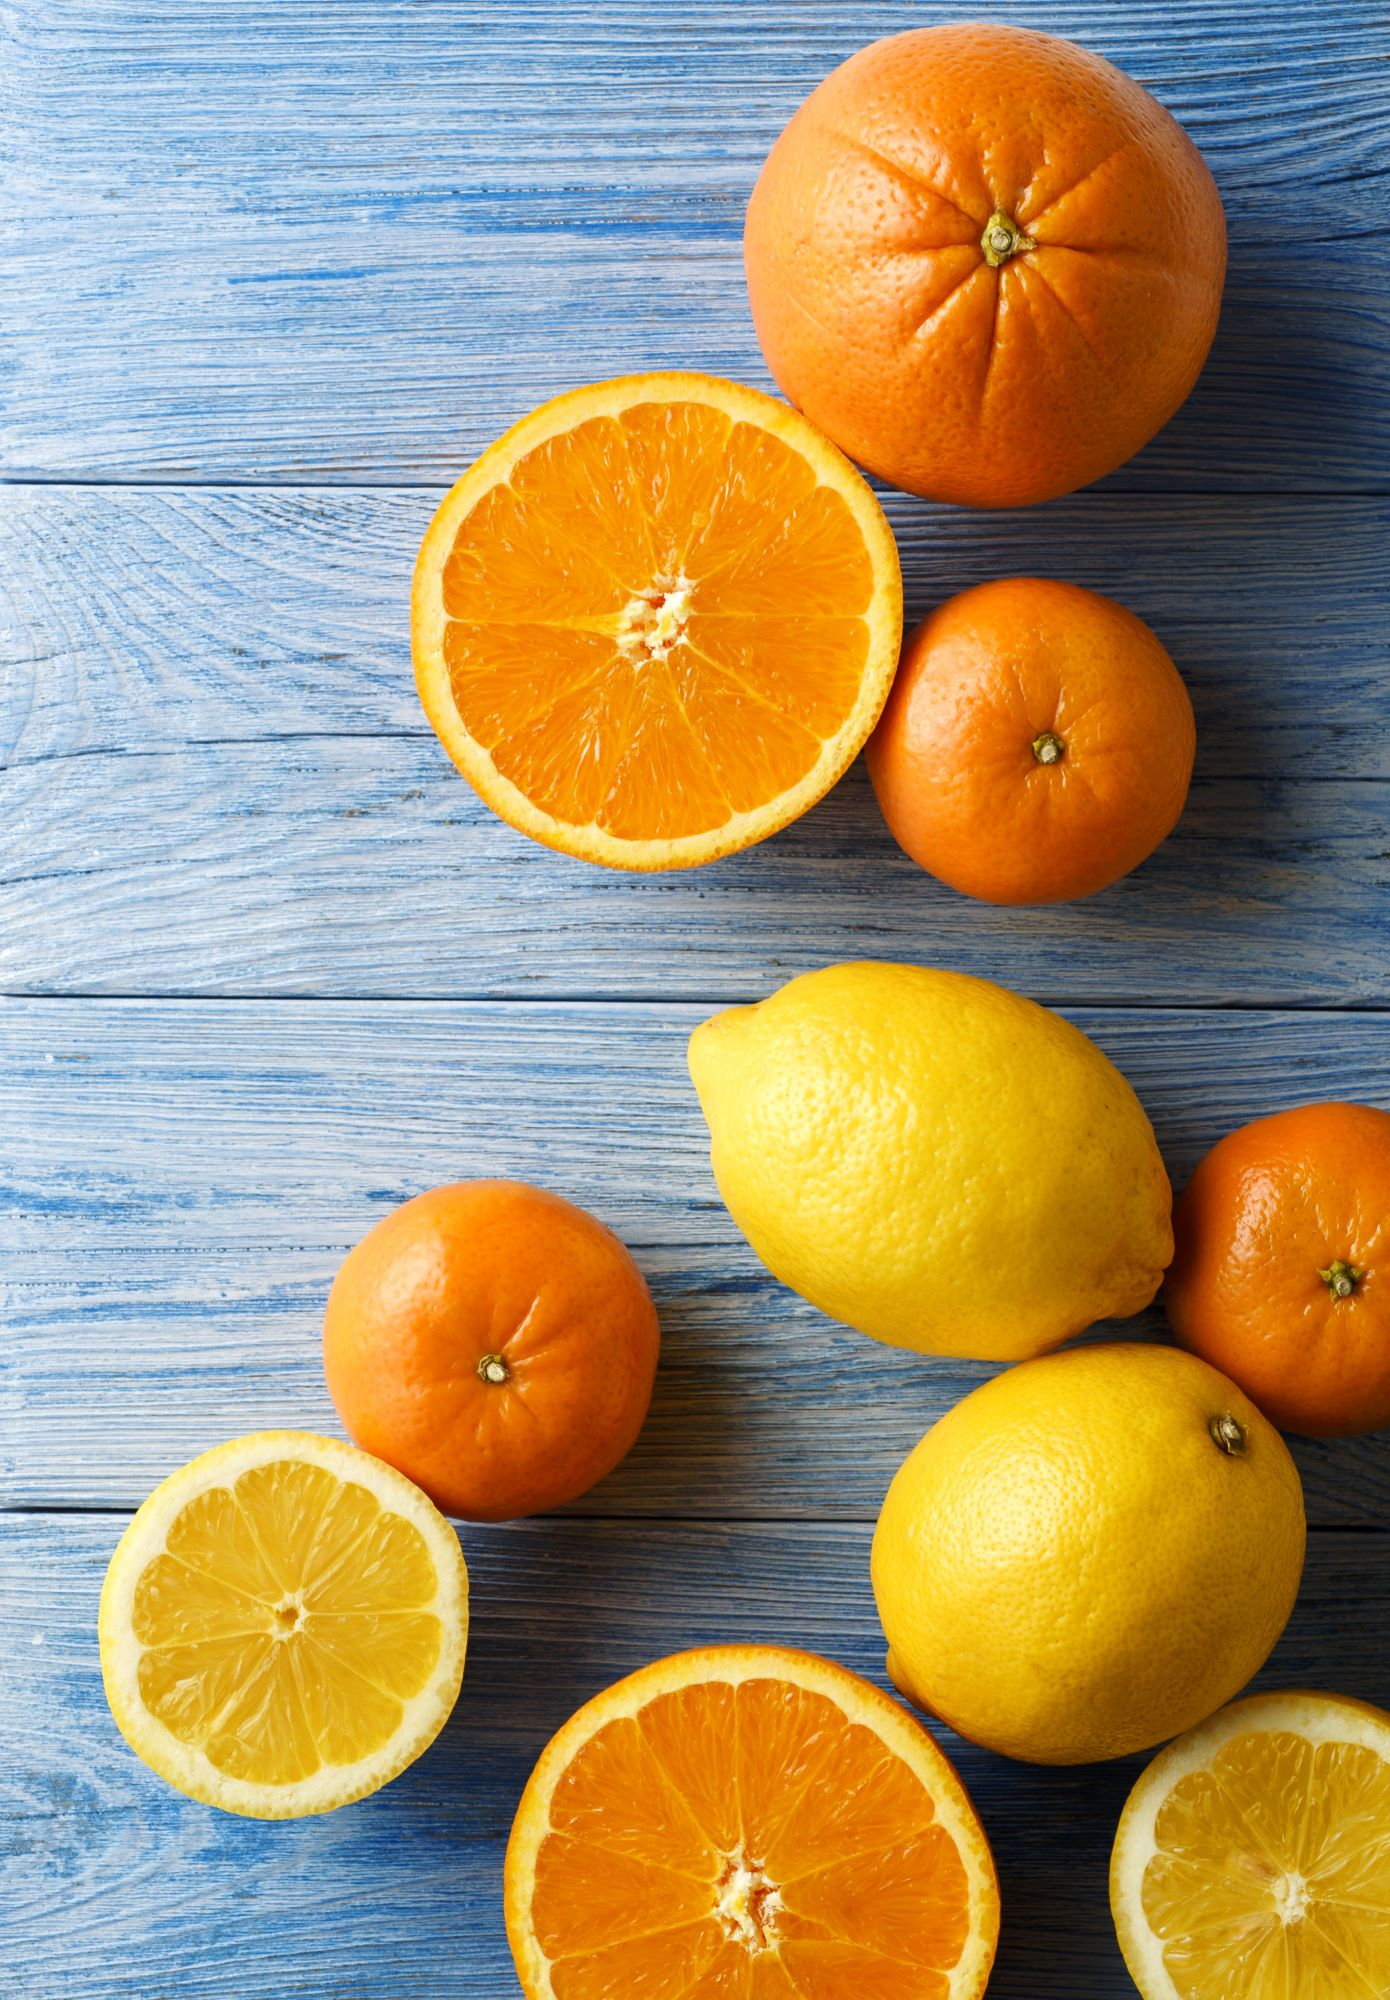 An Athlete's Guide to Vitamin C